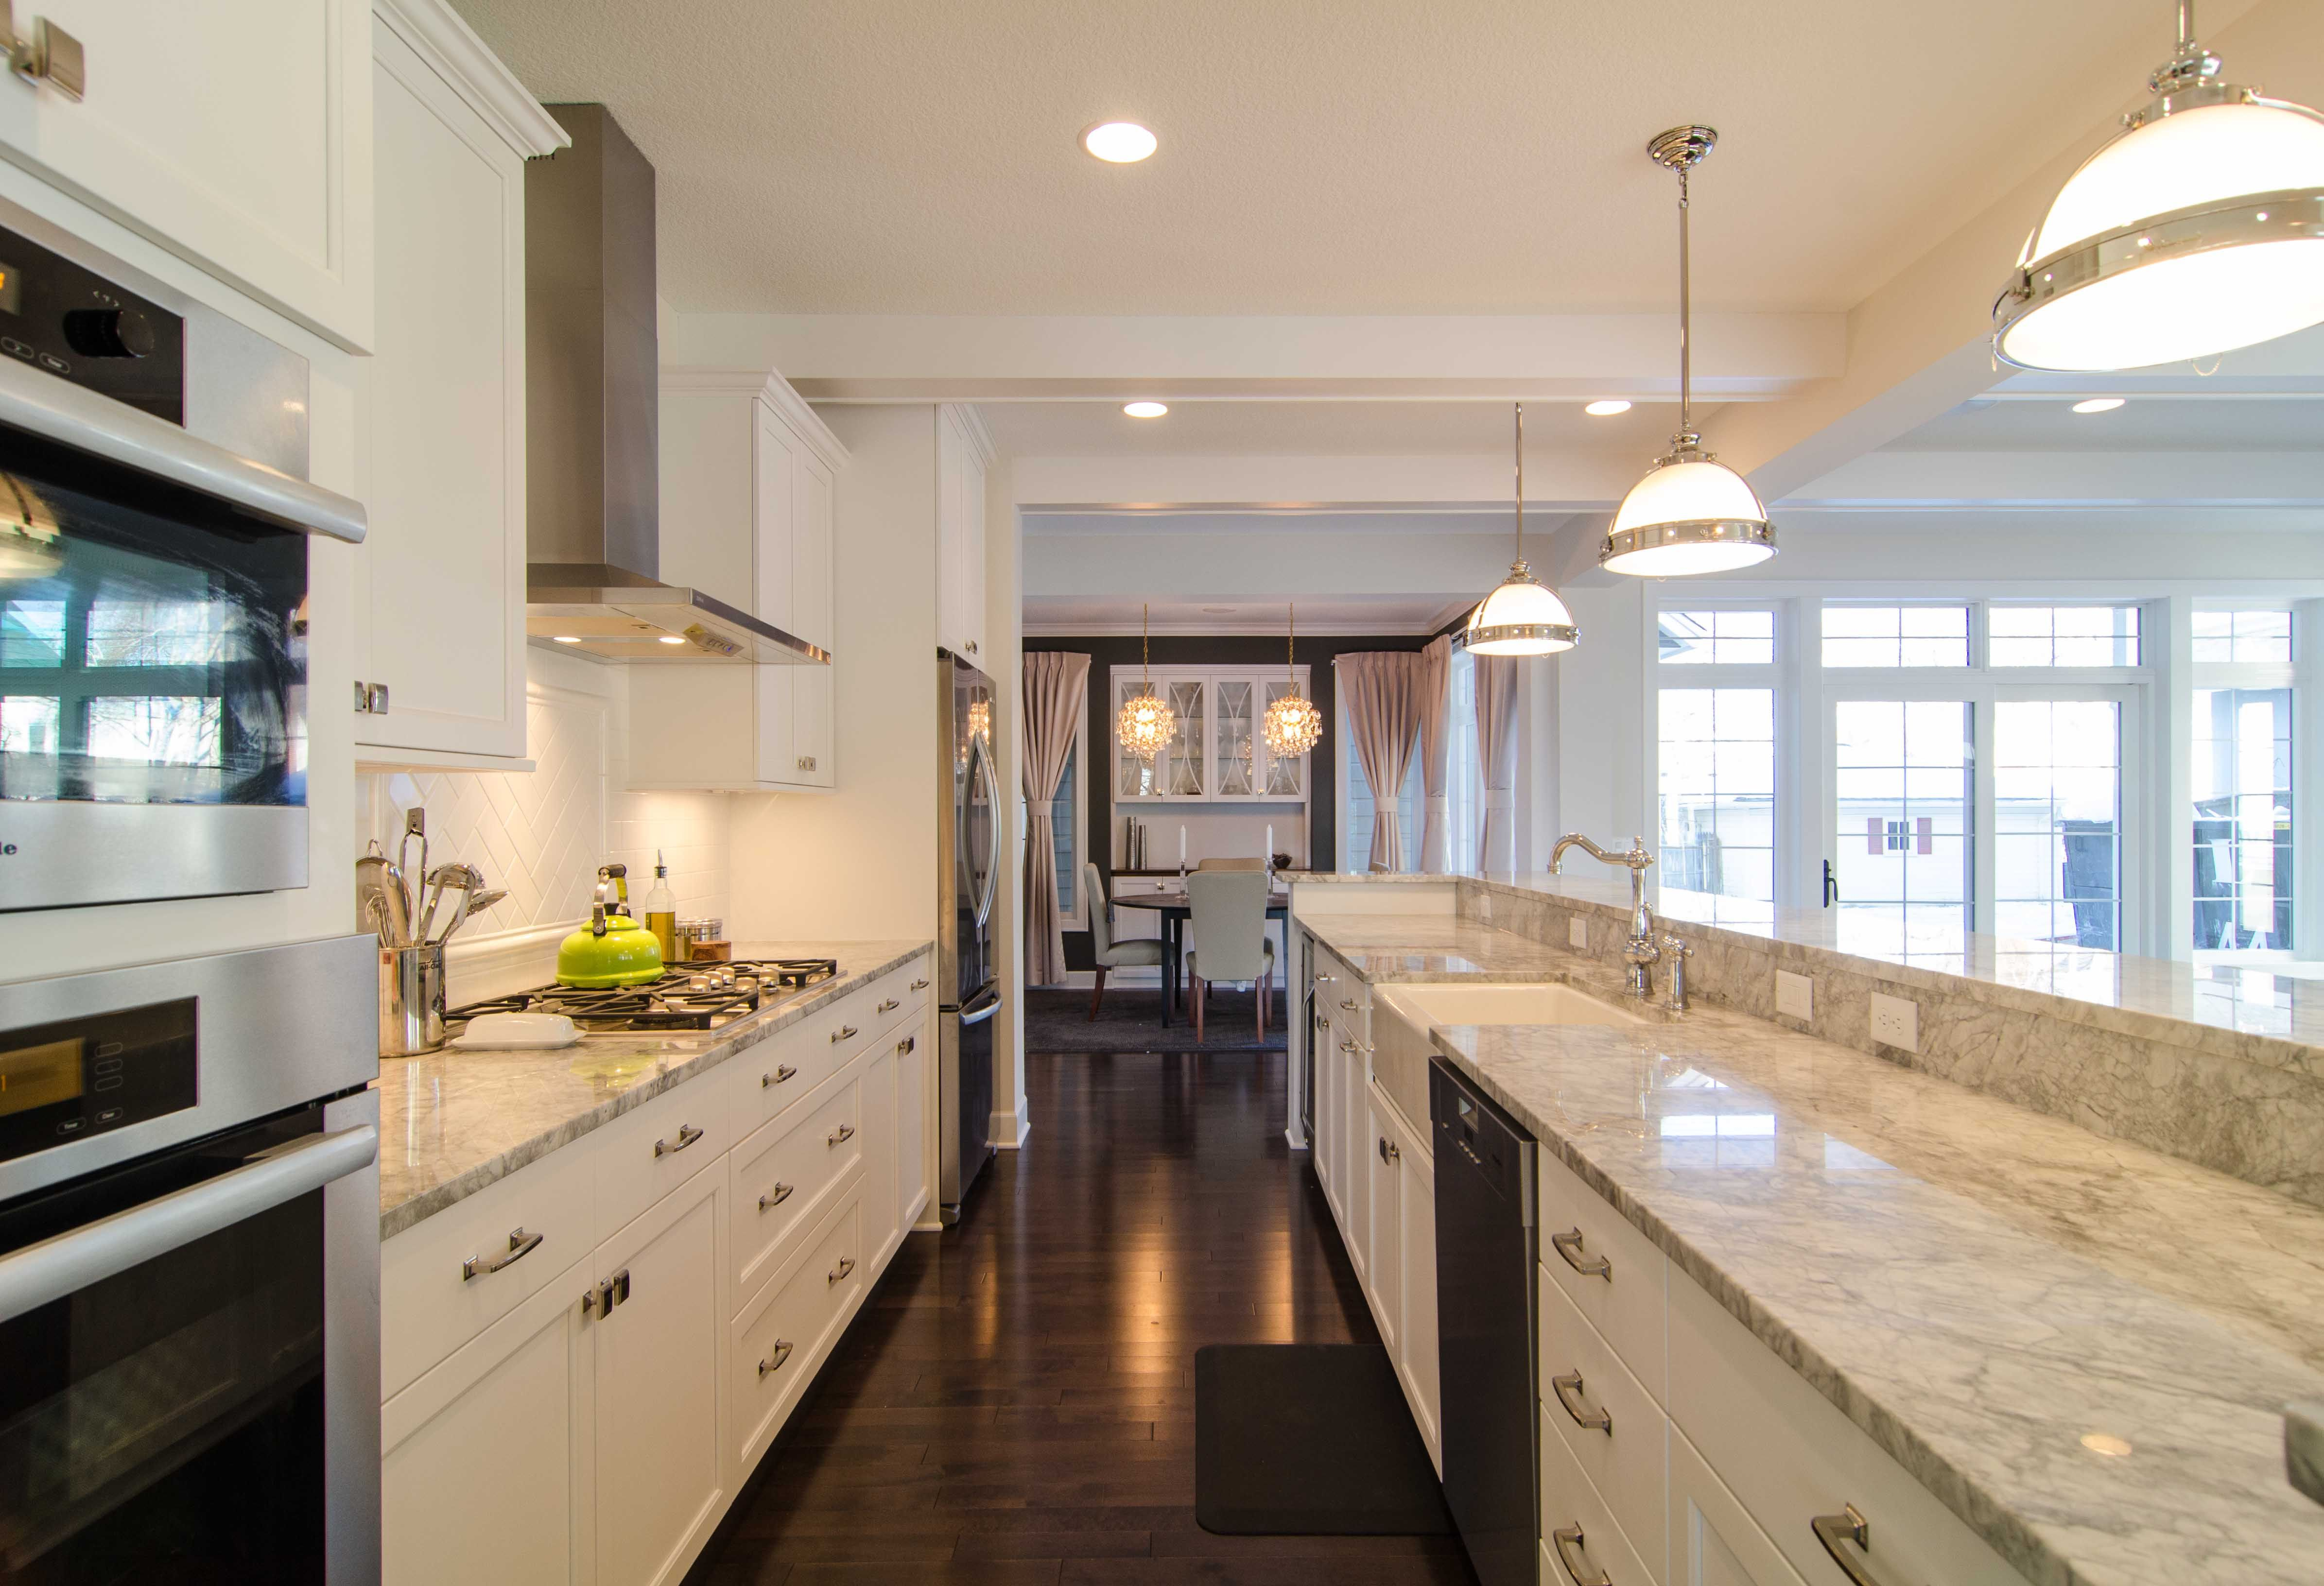 Interior,White Furnishing Galley Kitchen Ideas With Small Place As Well As White Marble Tops And Dark Wood Floors In Luxurious Kitchen Ideas ,Wonderful Galley Kitchen Ideas For Space Efficiency